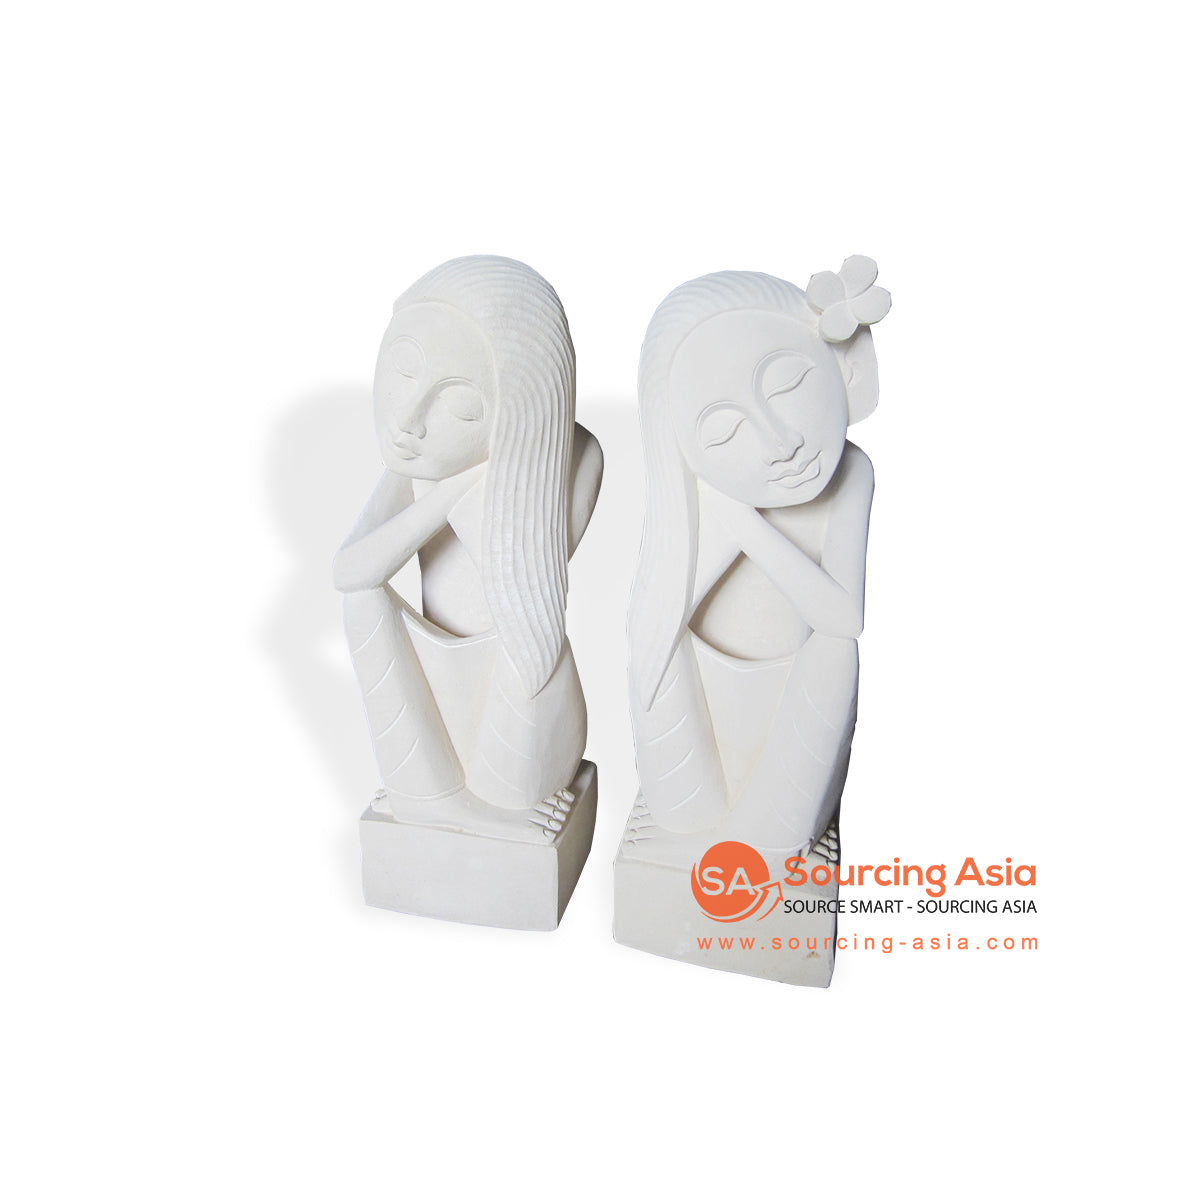 MHB136-60 SET OF 2 DREAMING LADY LONG HAIR STATUE